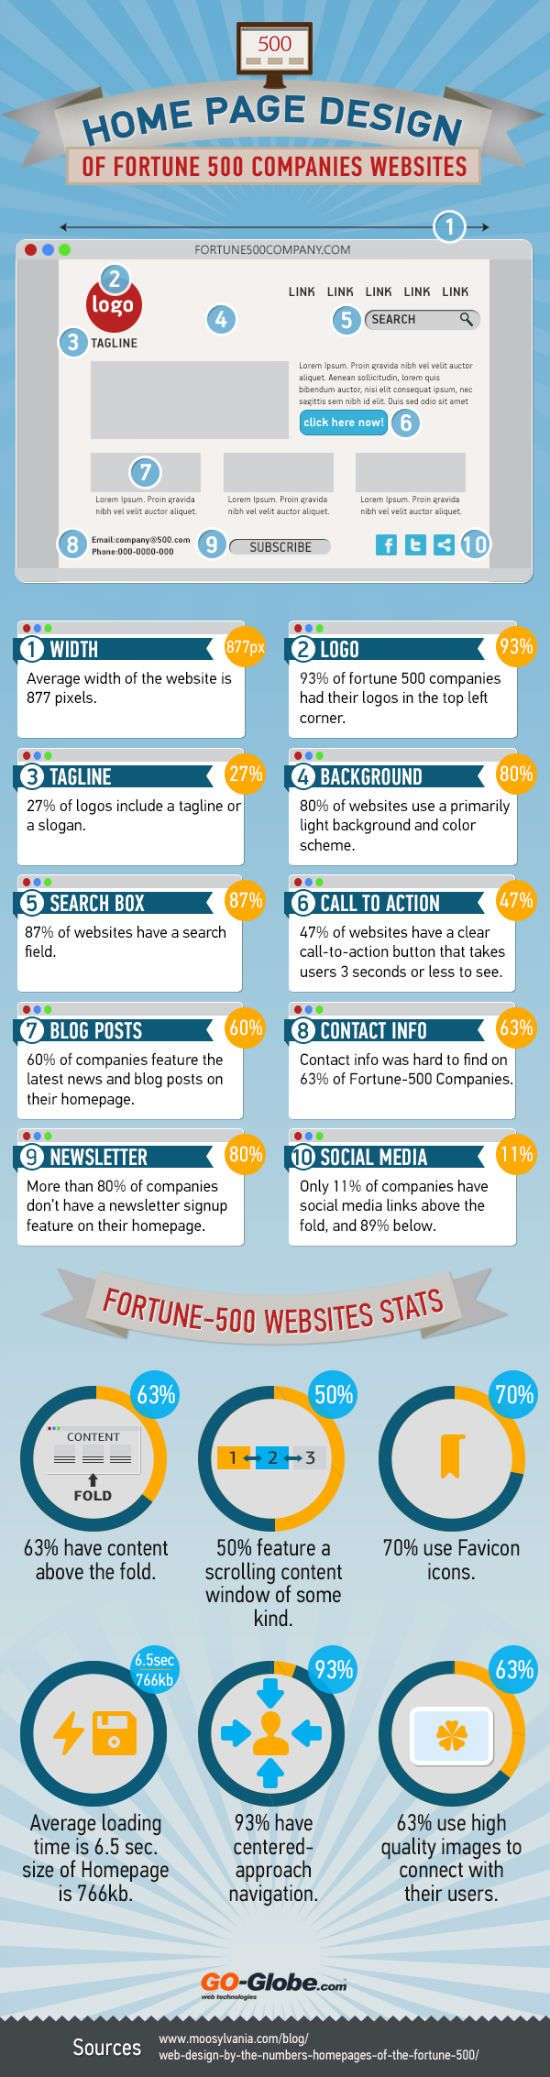 What Can You Learn From Web Design Of Fortune 500 Companies? (Infographic)